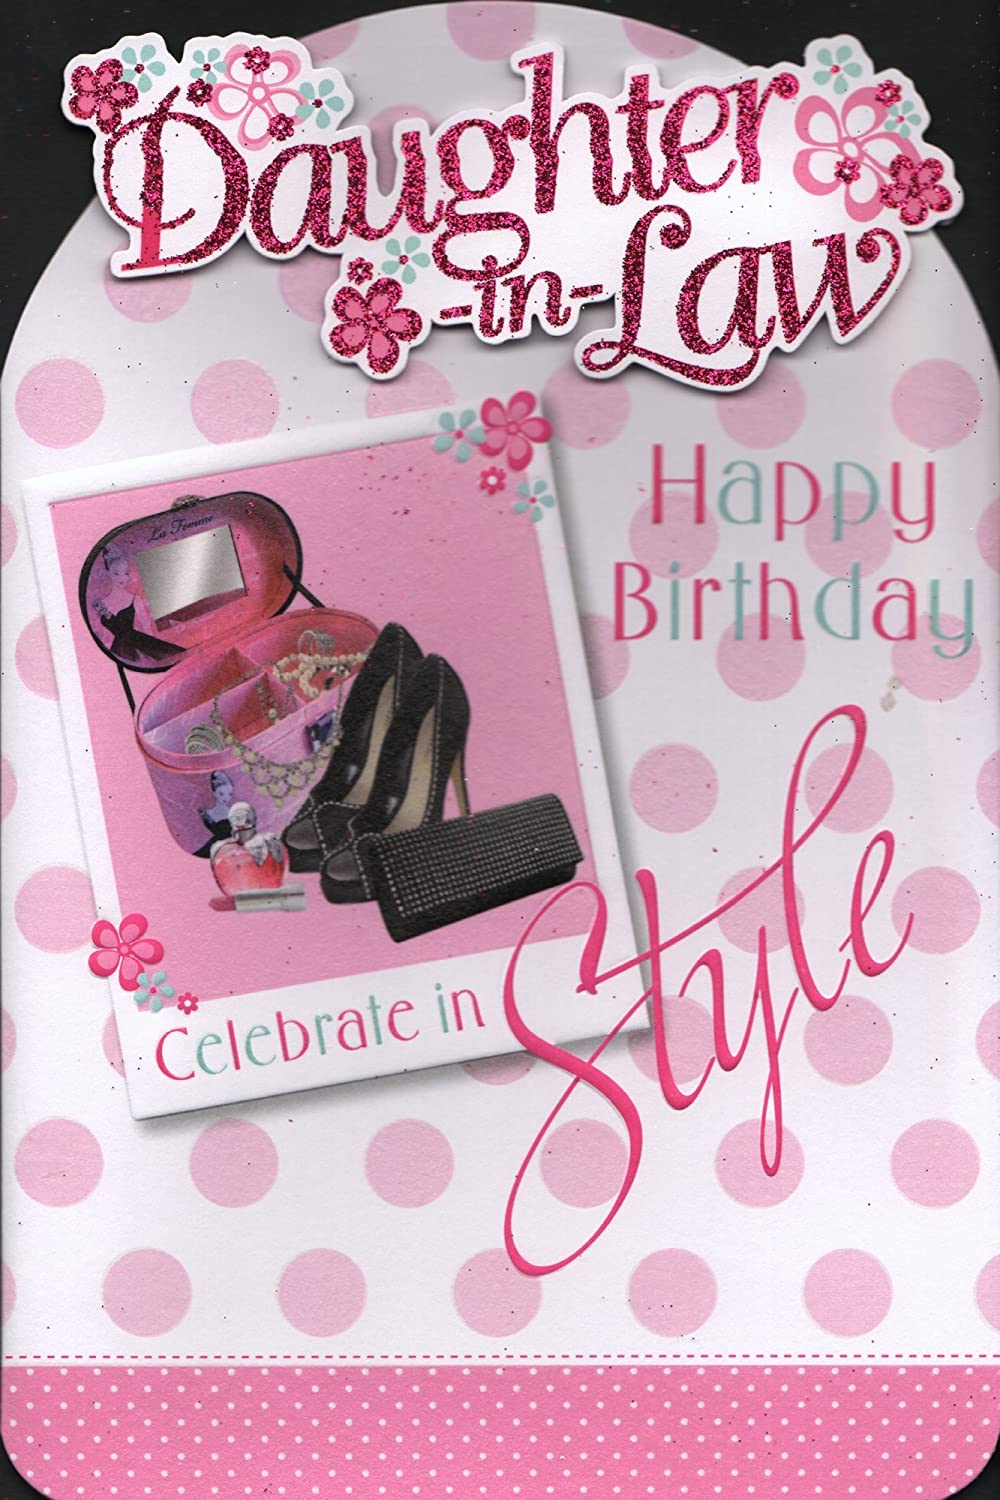 DaughterInLaw Birthday Card DaughterInLaw Happy Birthday – Happy Birthday Daughter in Law Cards